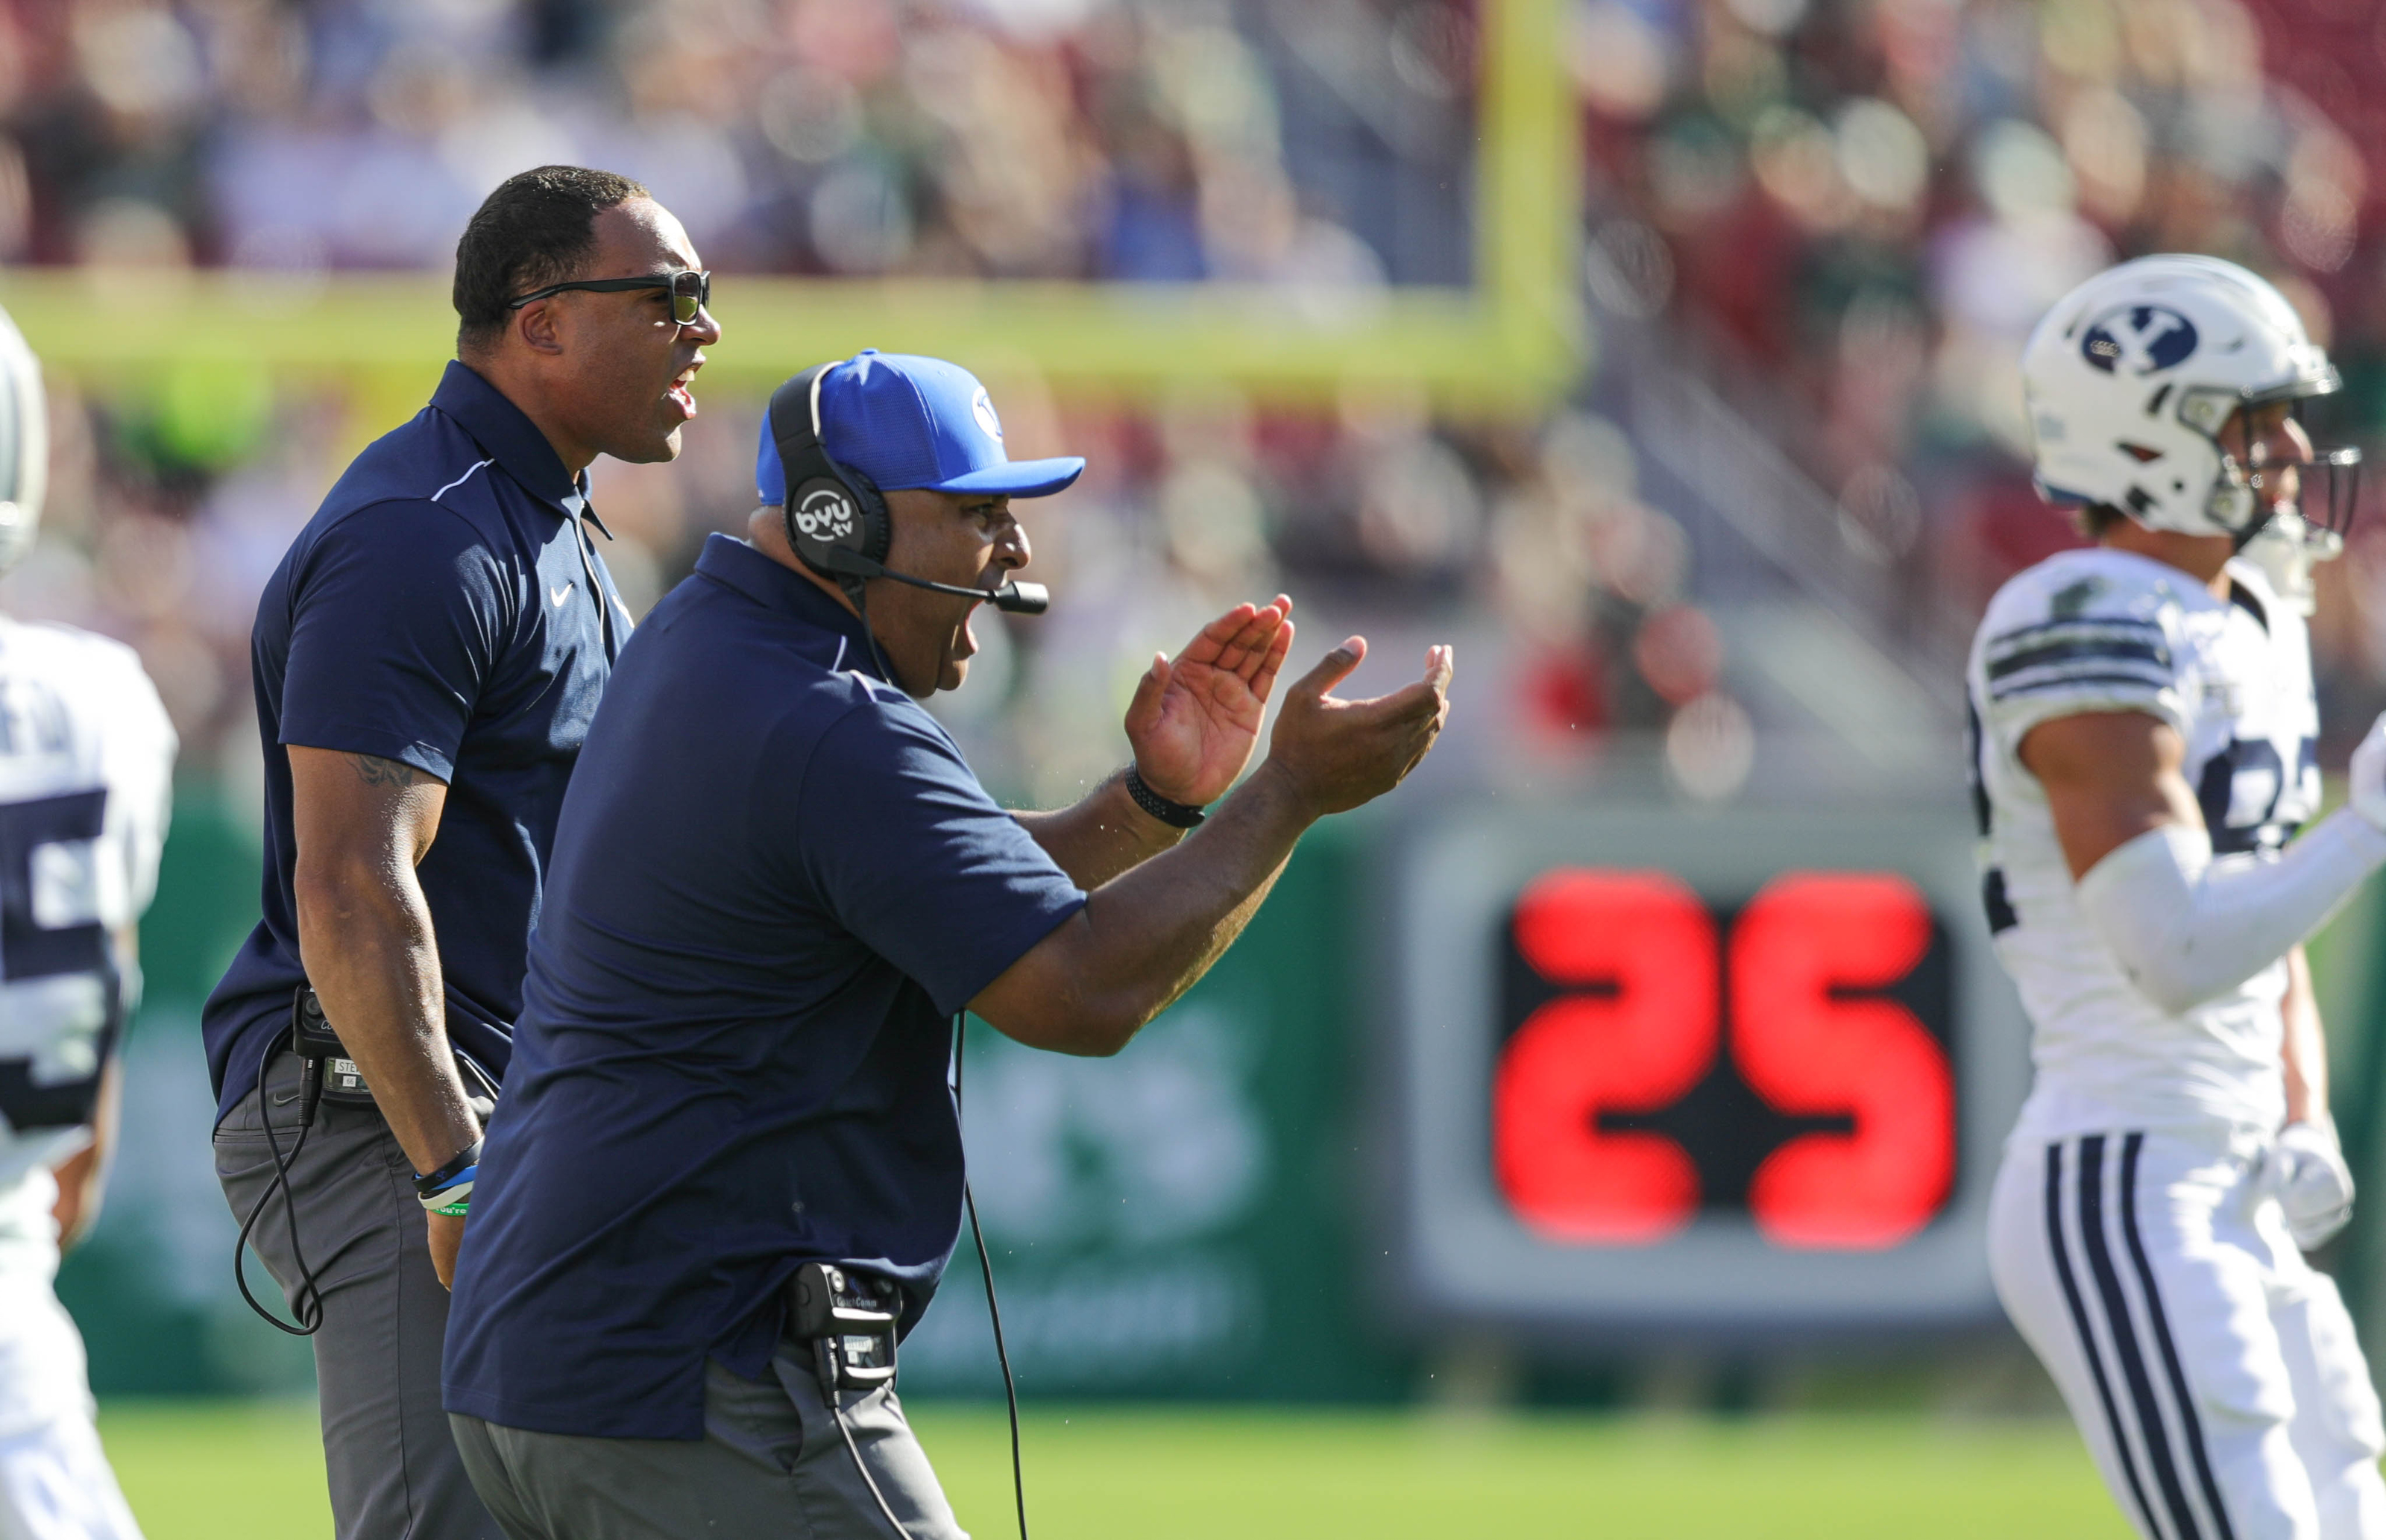 BYU head coach Kalani Sitake and running backs coach AJ Steward react to a touchdown in the first half against the USF Bulls at Raymond James Stadium in Tampa, Florida, on Saturday, Oct. 12, 2019.